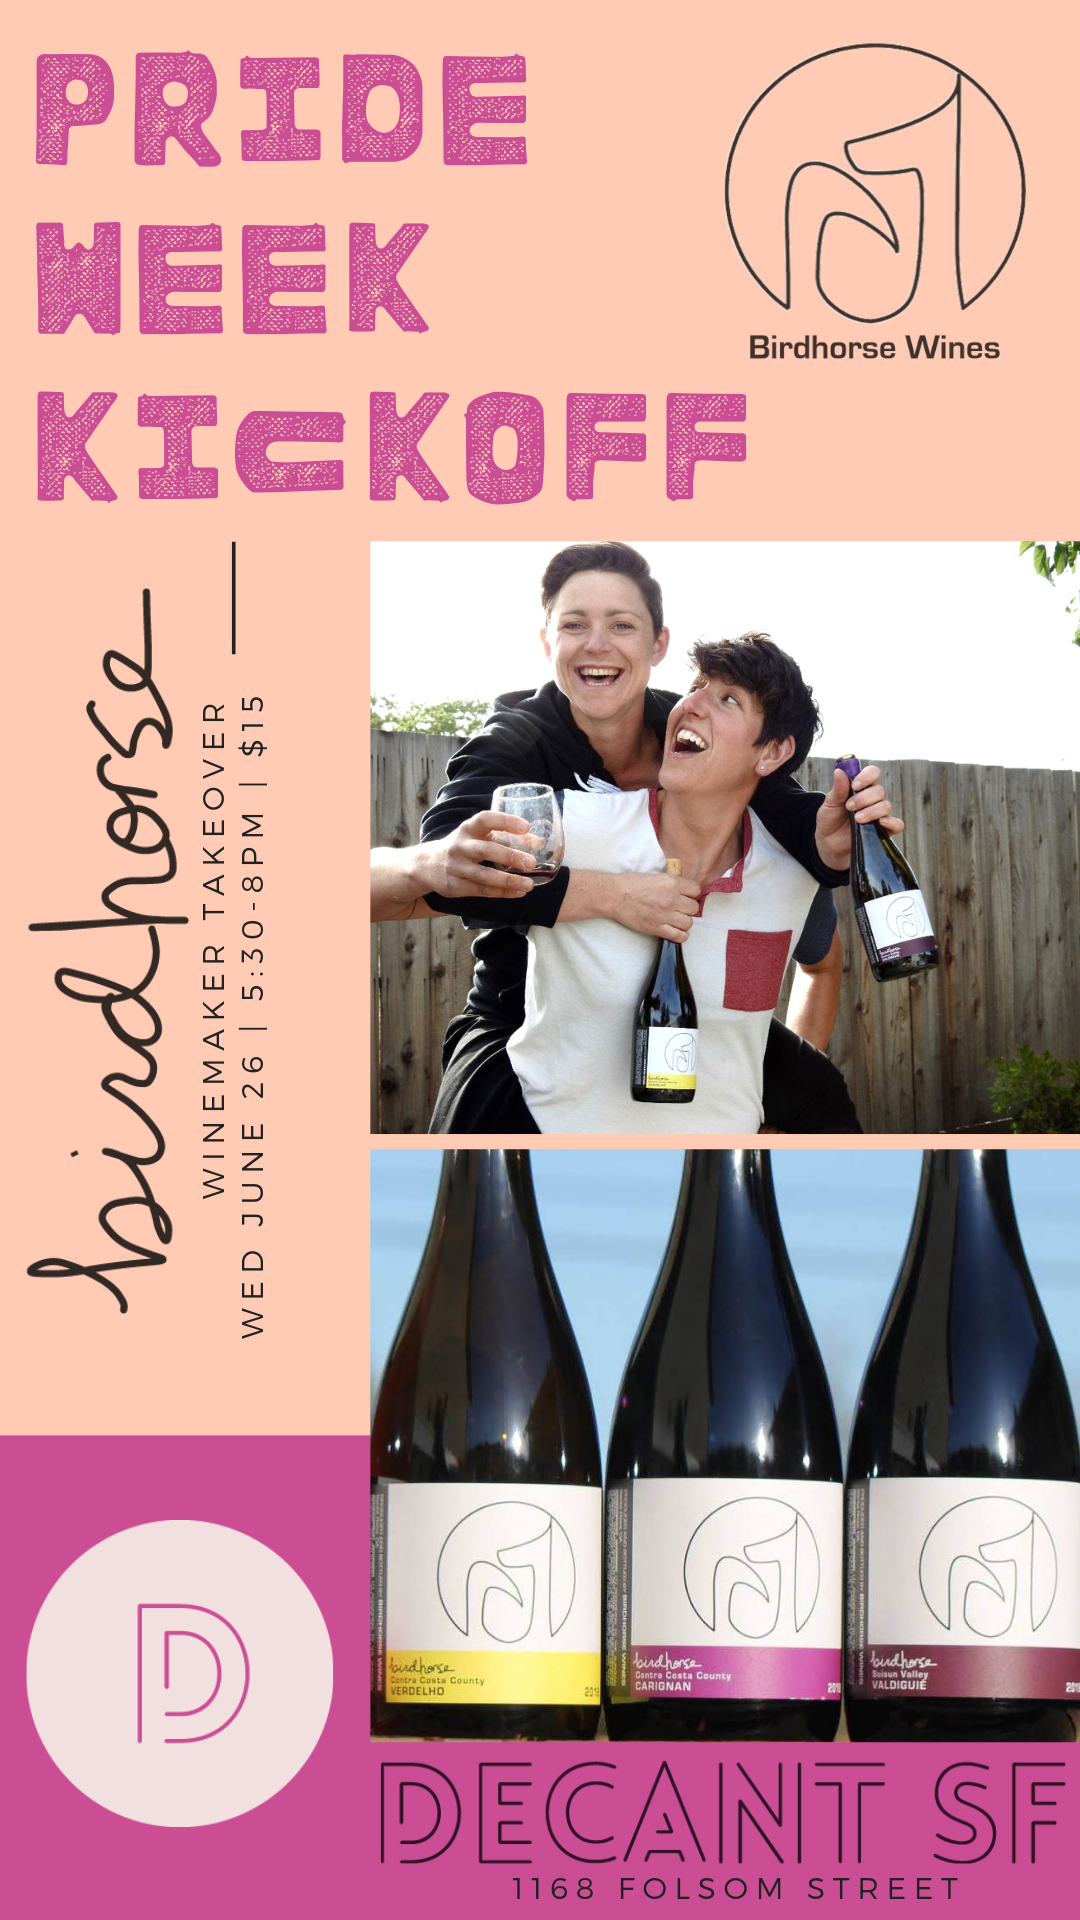 PRIDE Kickoff! - Birdhorse Wines' Corinne, Katie, and Taylor pour amazing wines made in the Bay Area from 5:30-8p!